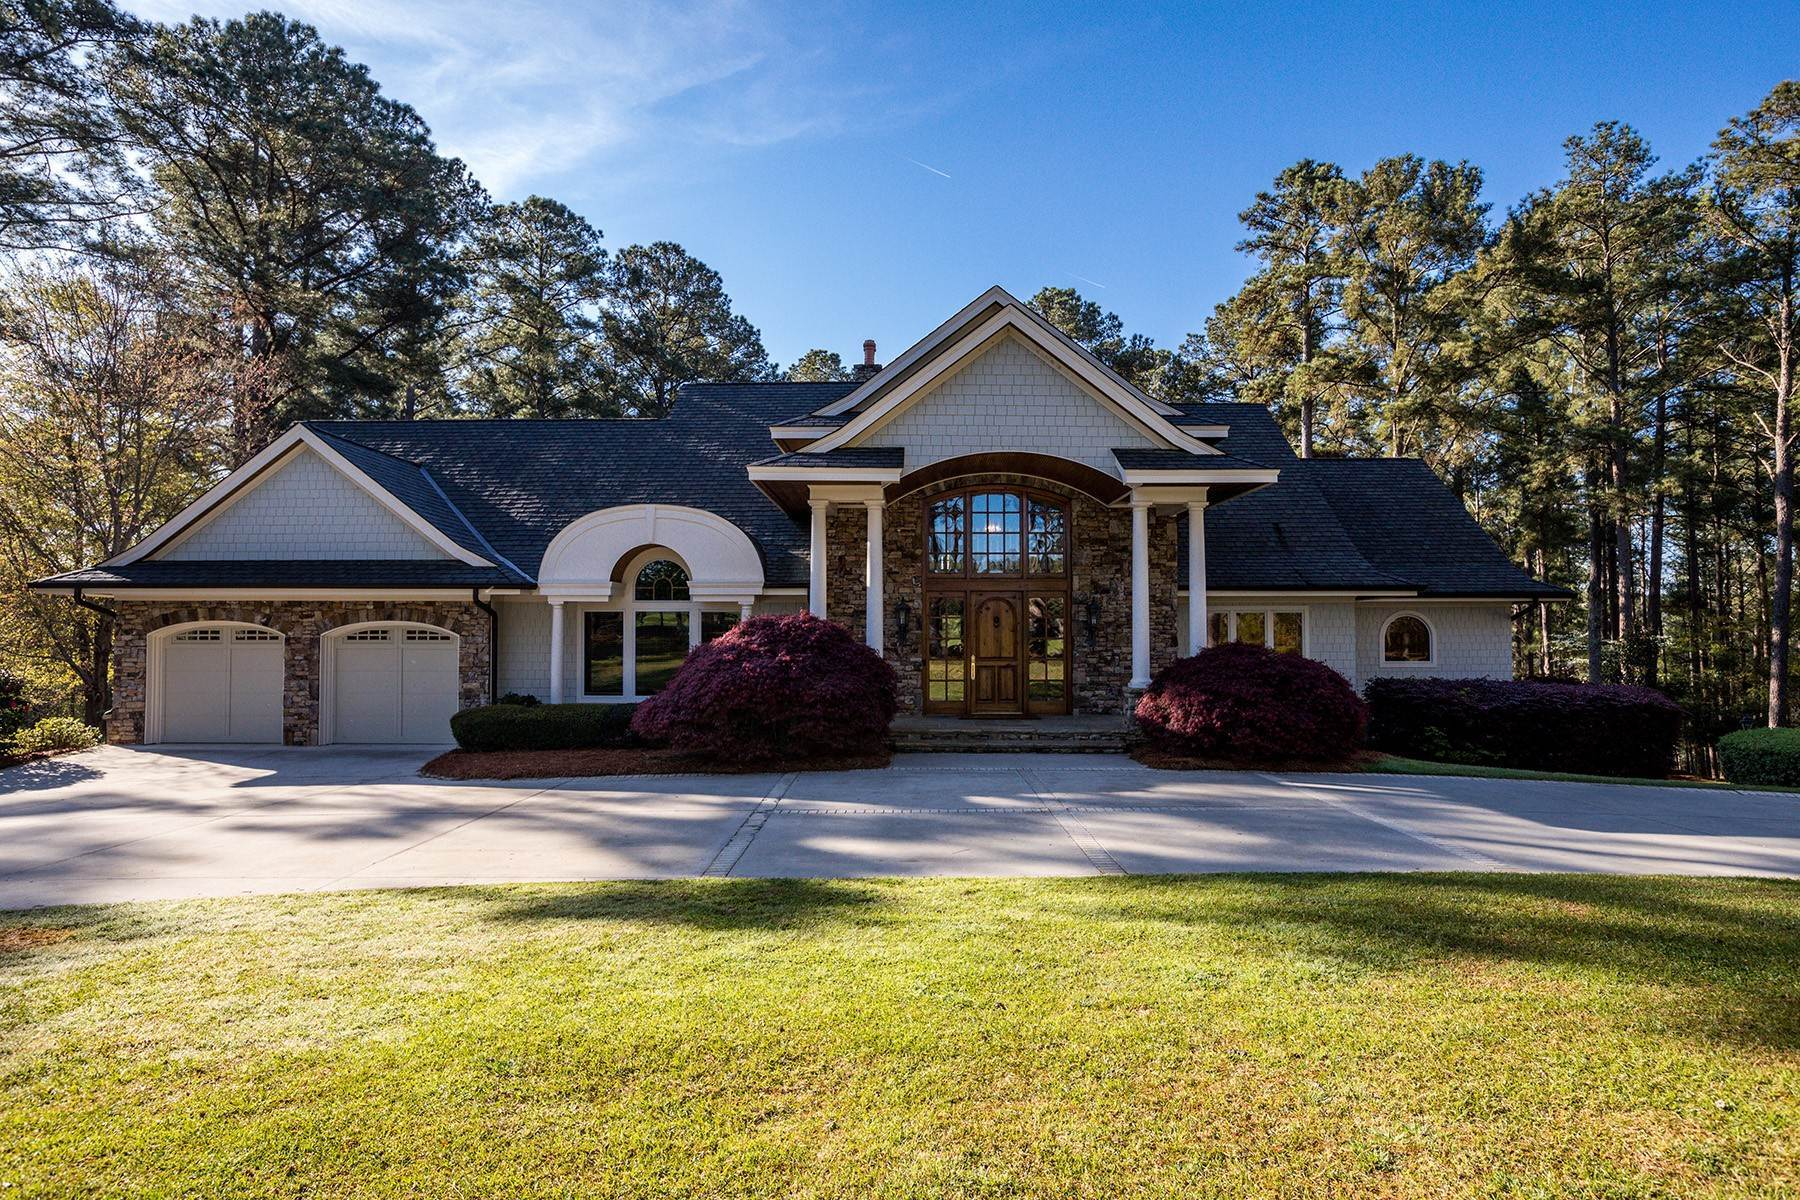 Single Family Homes for Sale at Private, Gated Entry Prefaces Tree-Lined Drive With Rolling Pasture Views 52 Chigoe Lane Appling, Georgia 30802 United States